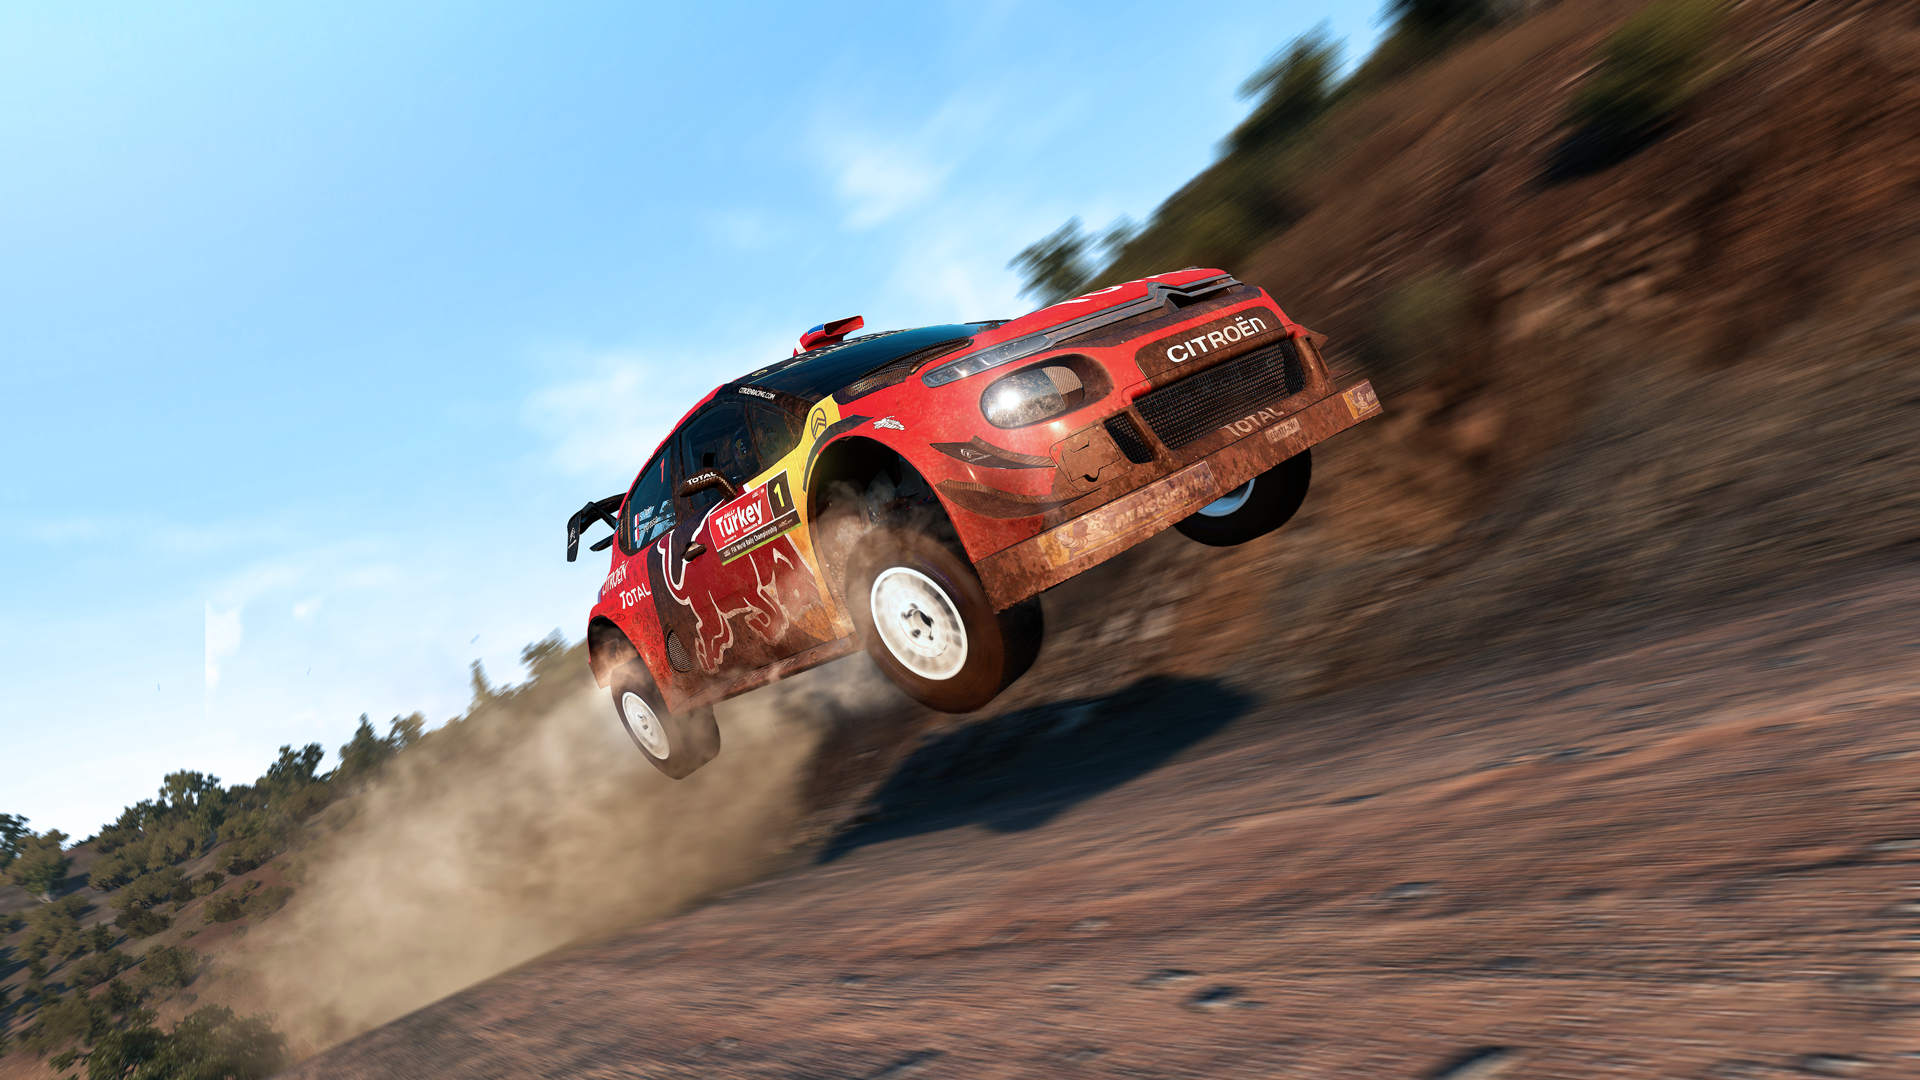 A red rally car, dust trailing behind it, soars over a jump and through the air.